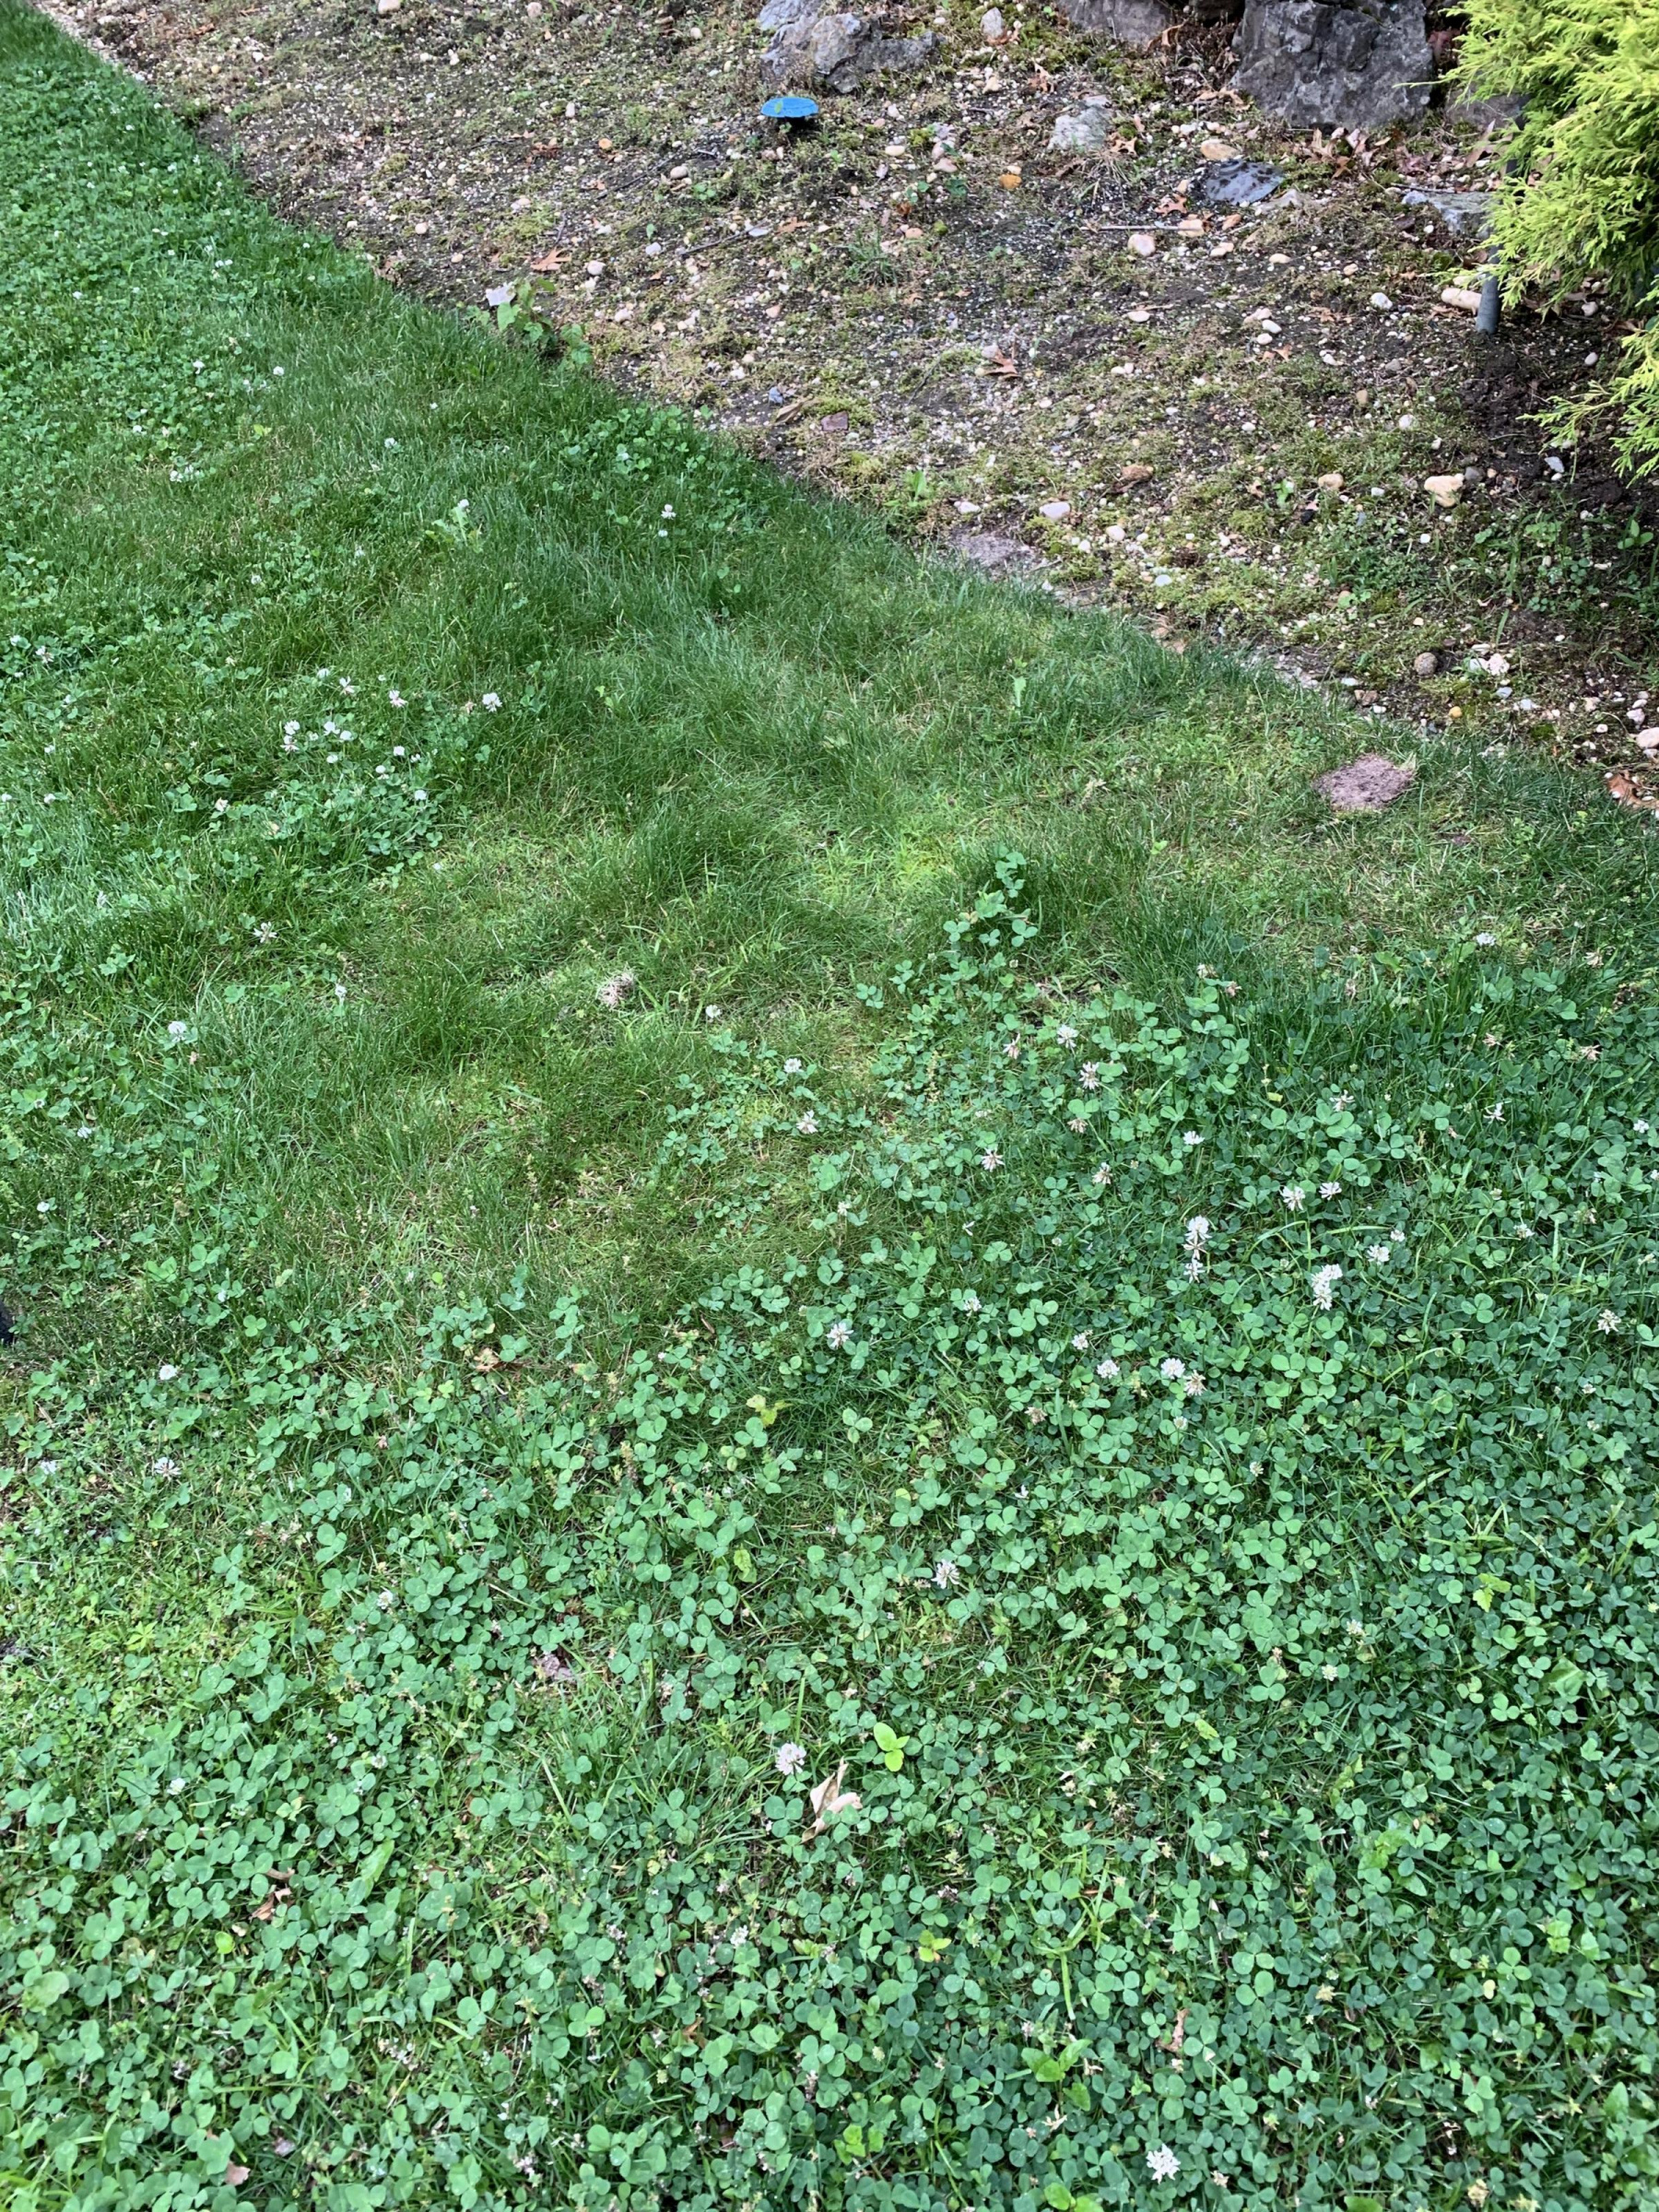 Removing this from the lawn-59bcd30d-ba1c-4c45-aa7d-922ed951085a_1560425347710.jpg